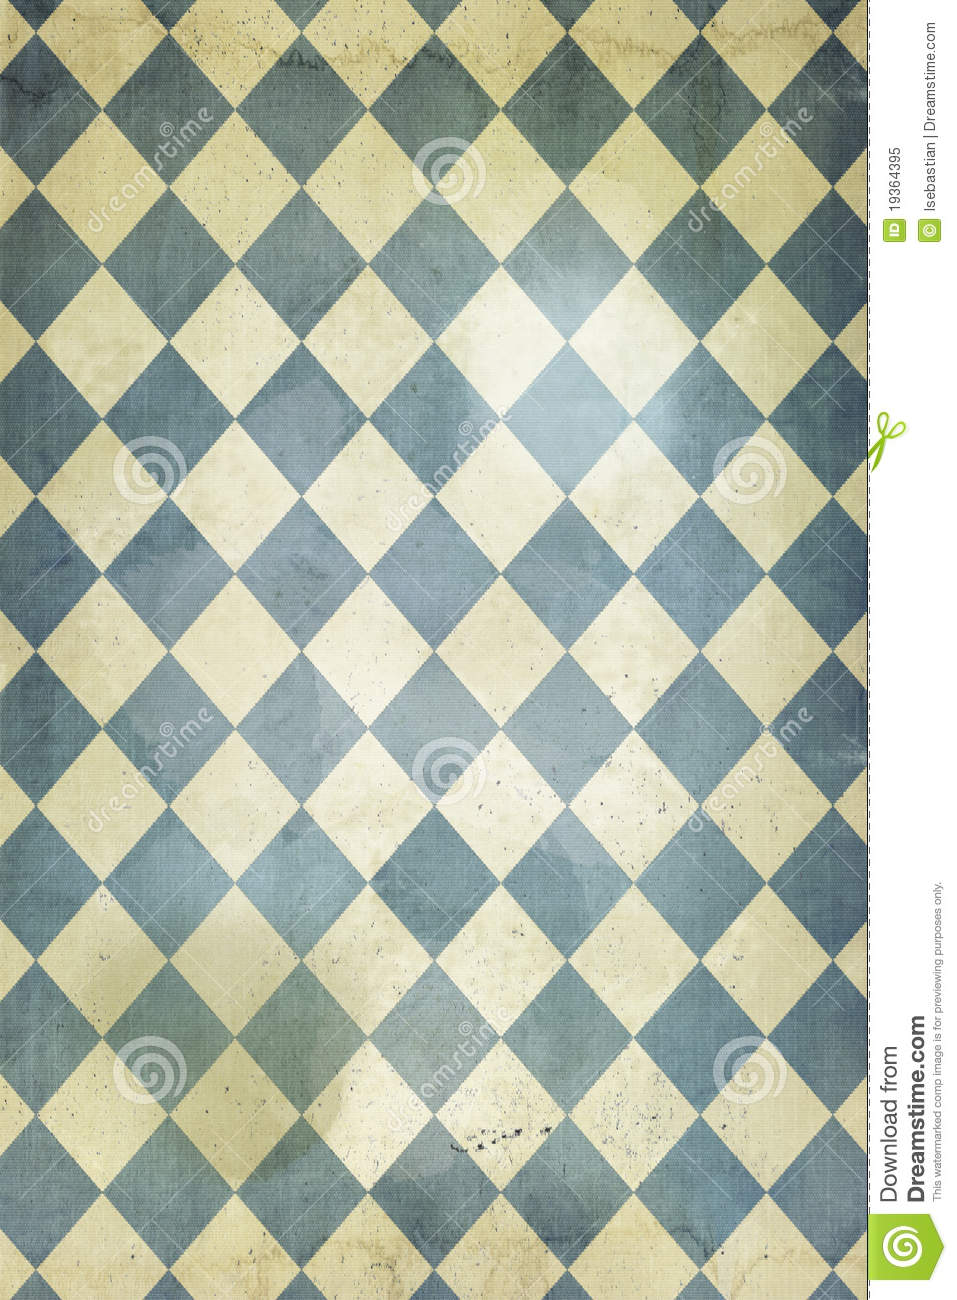 Harlequin Wallpaper Images Crazy Gallery Picture 957x1300